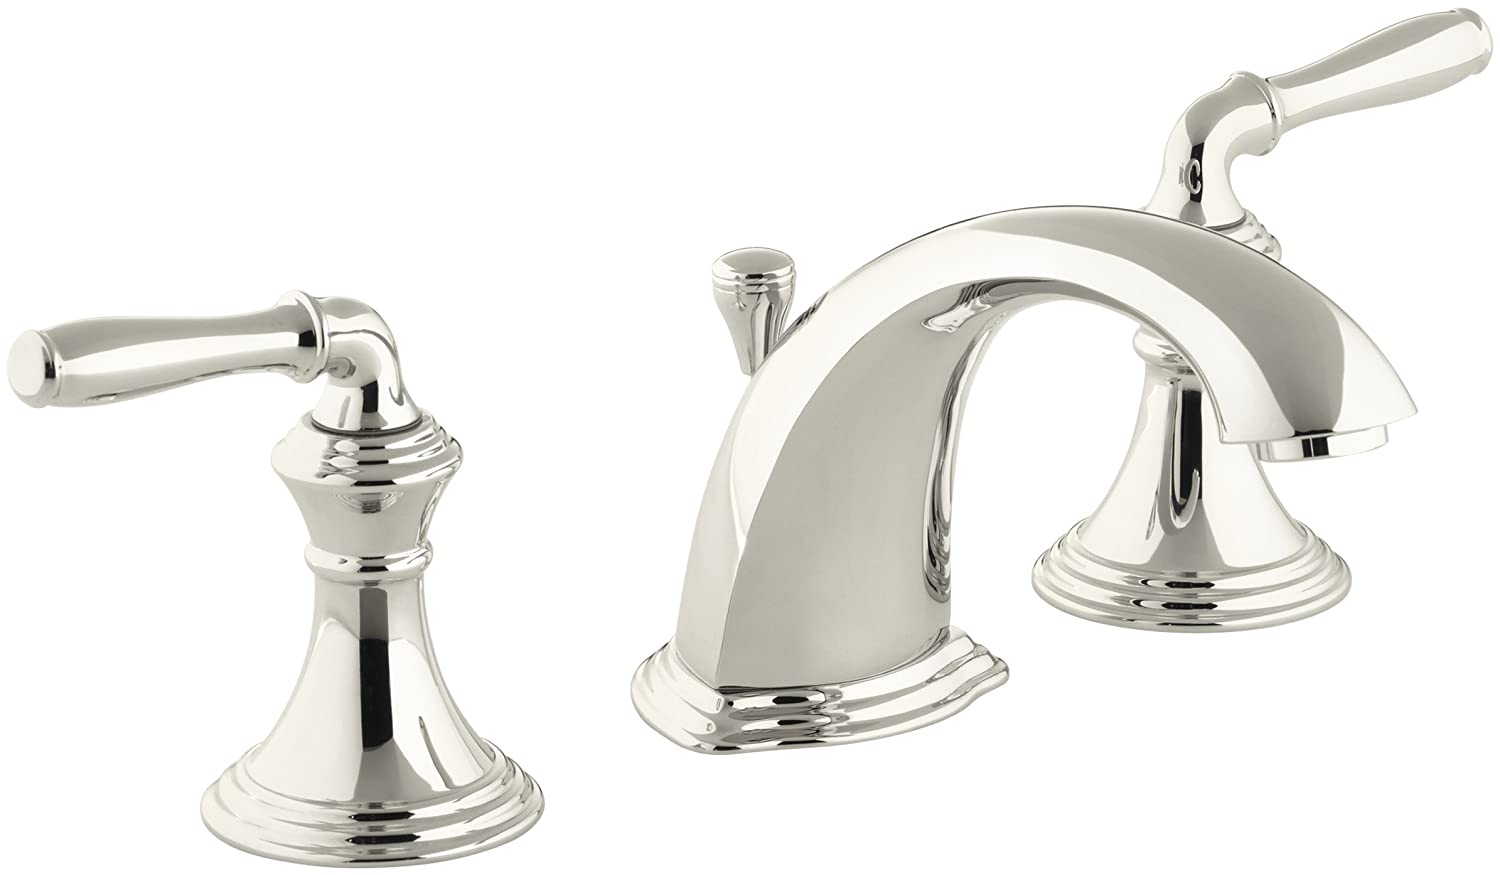 KOHLER Devonshire K-394-4-SN 2-Handle Widespread Bathroom Faucet with Metal  Drain Assembly in Polished Nickel